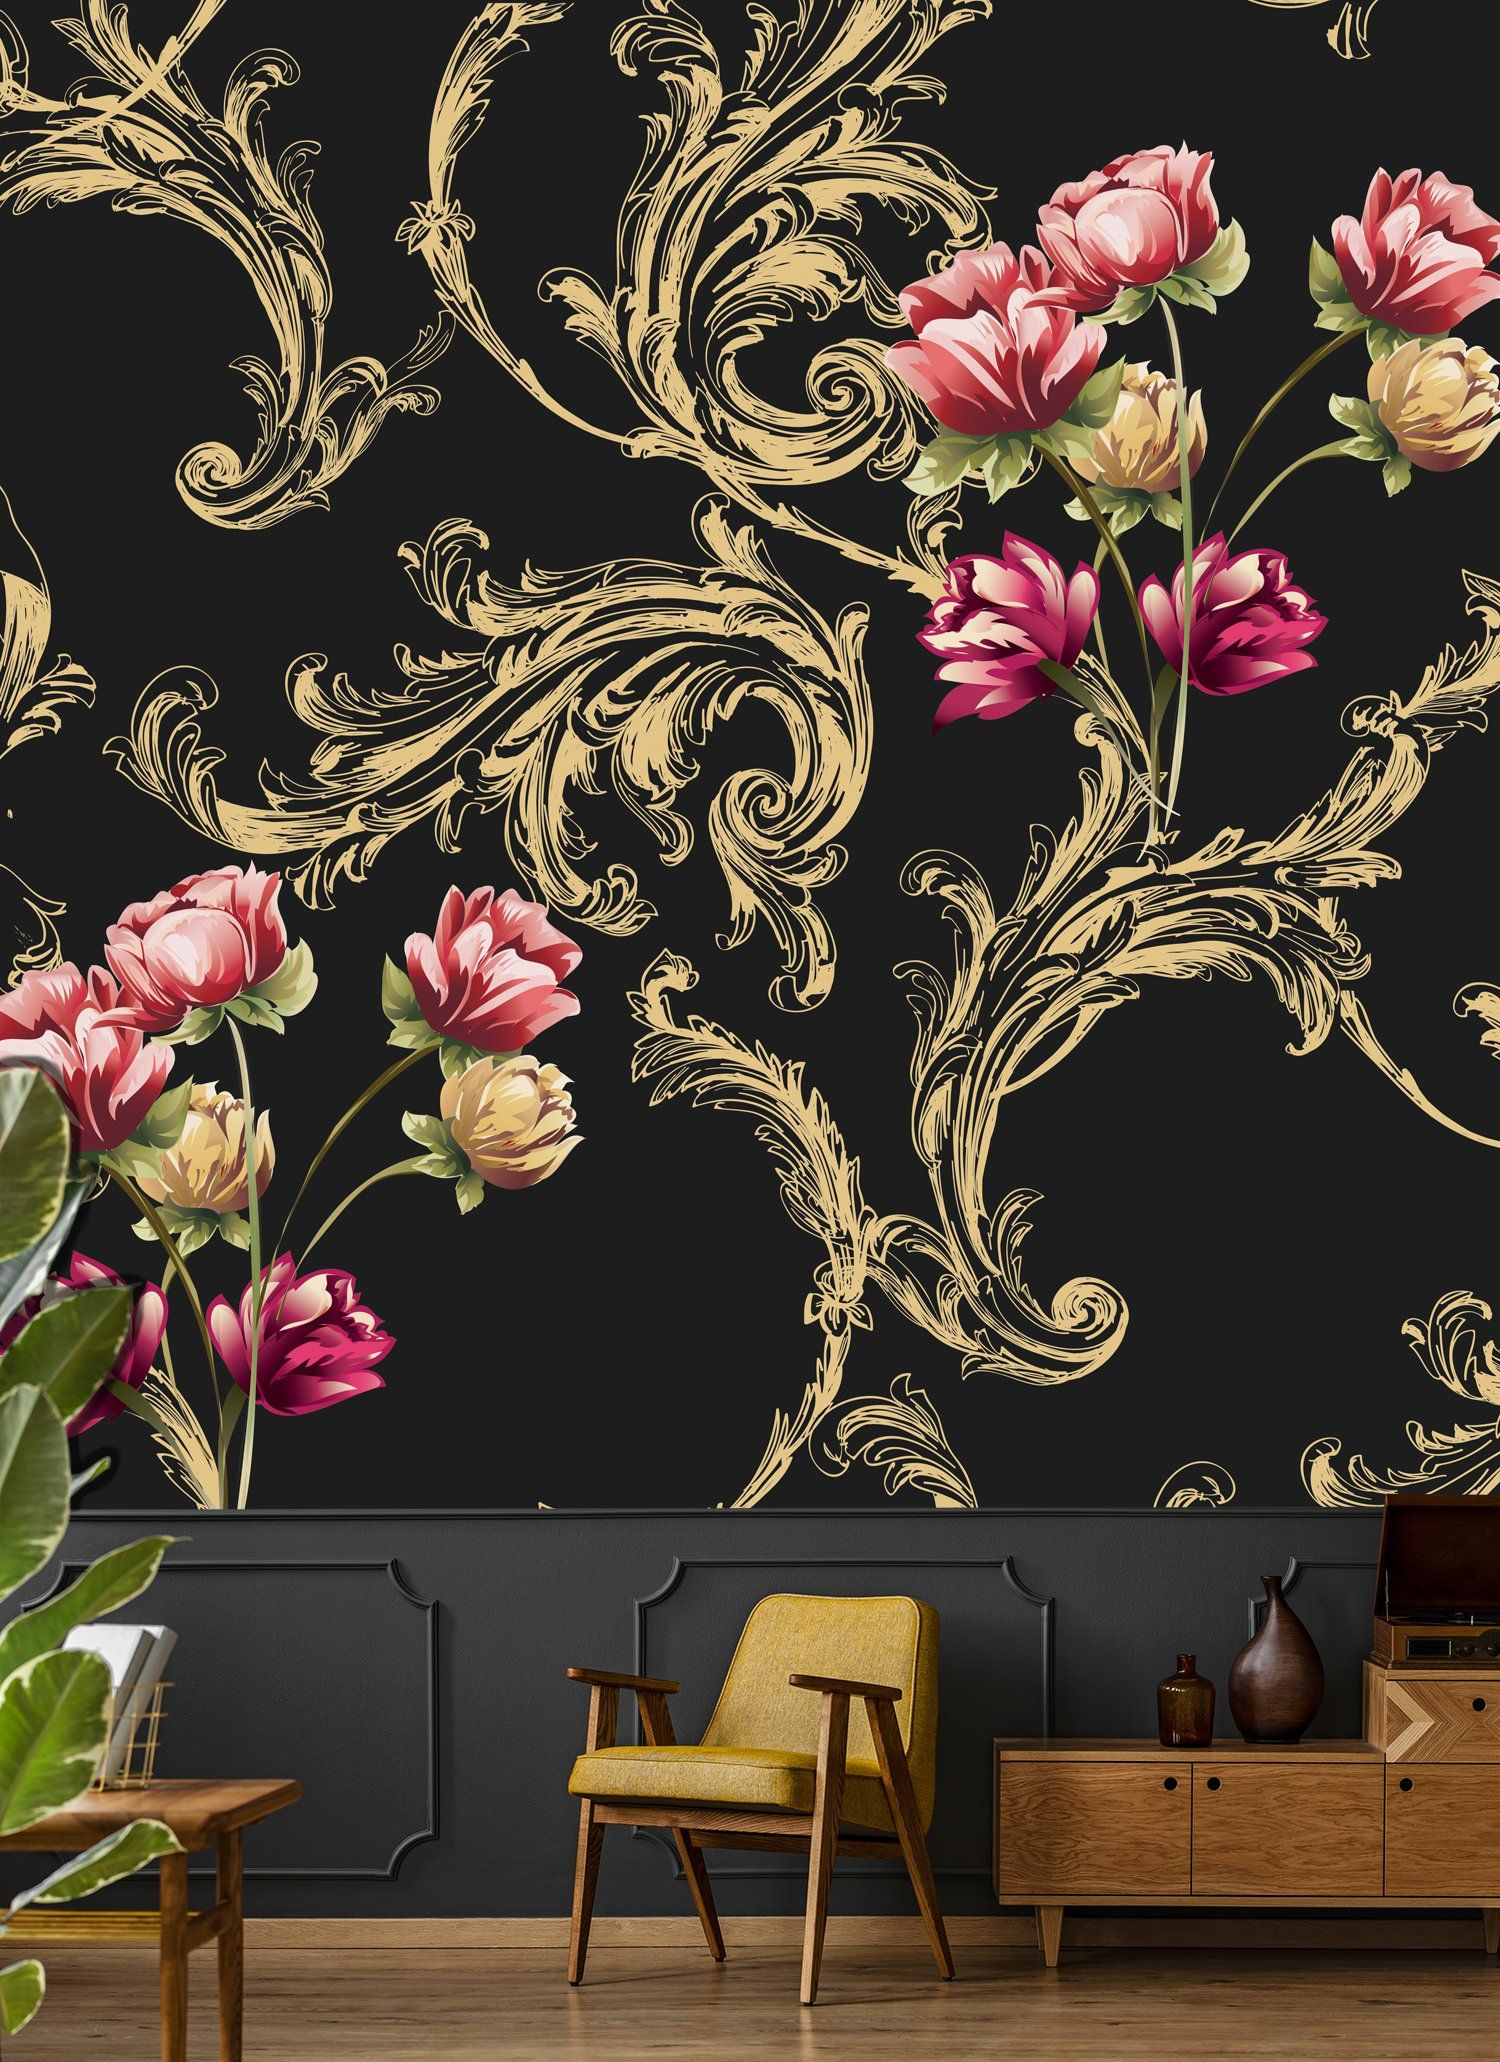 Removable Wallpaper With Floral Ornament Peel And Stick Dark Etsy Floral Wallpaper Rose Gold Wall Decor Vintage Wallpaper